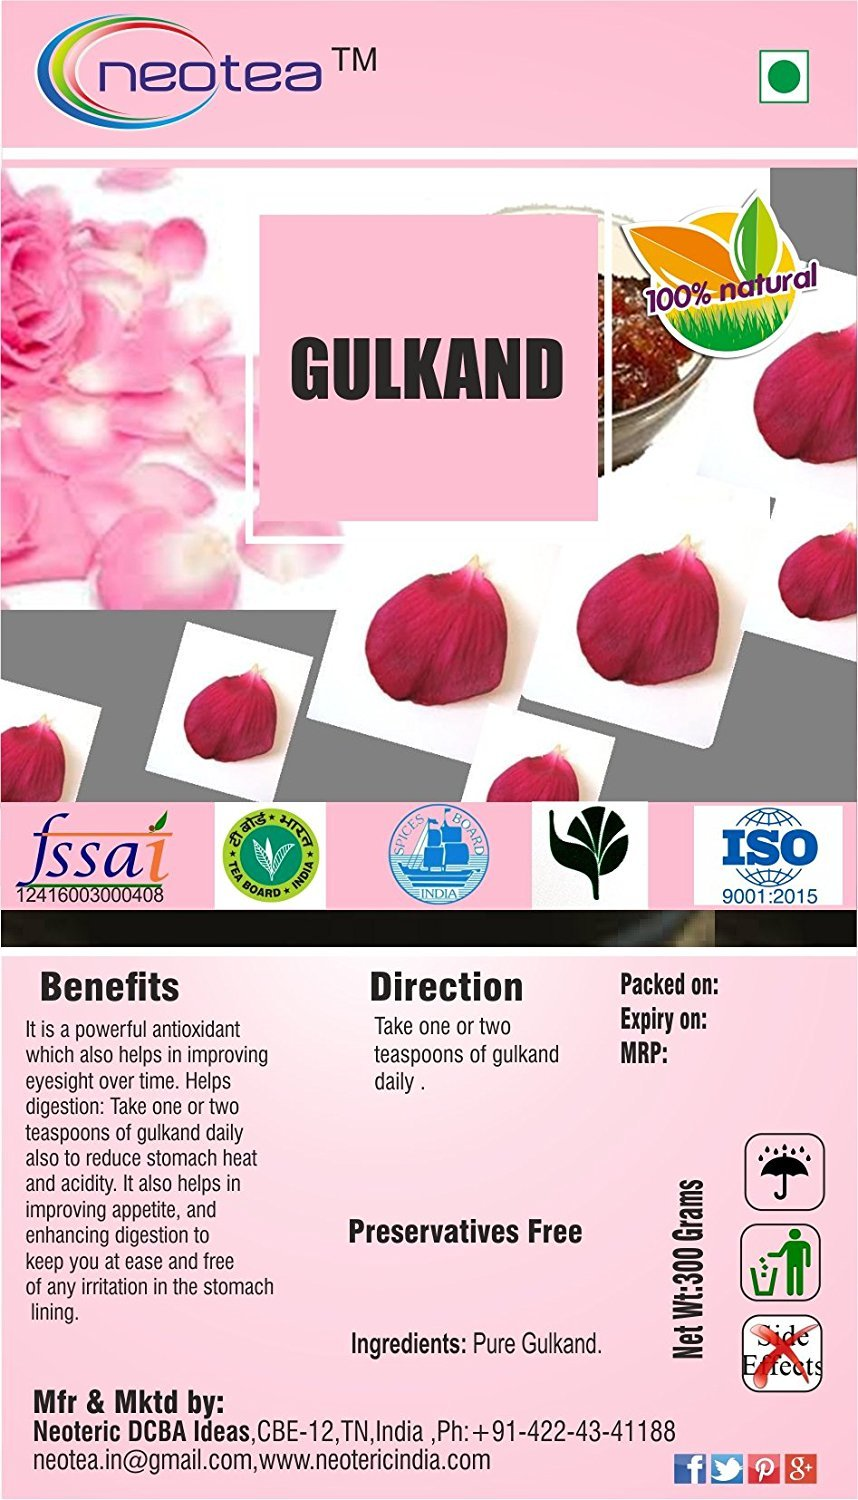 Neotea Gulkand 1 Product Kg Sale special price